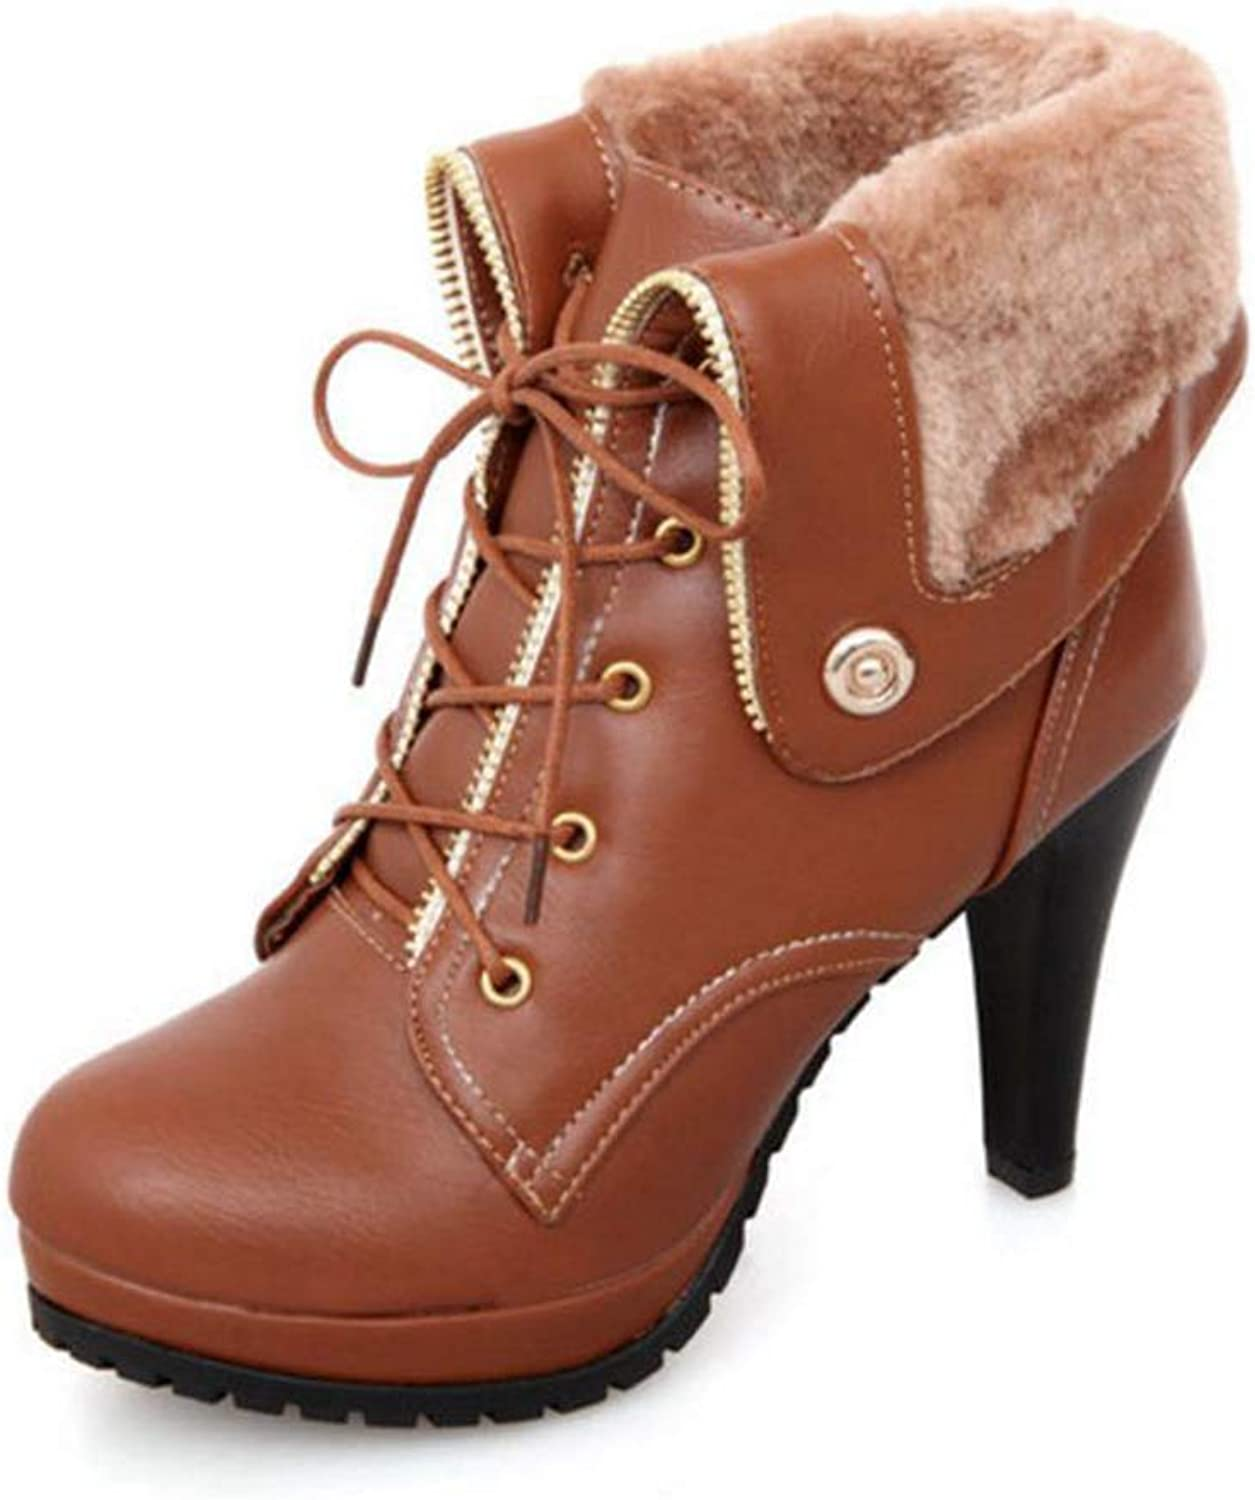 Women shoes Short Ankle Lace Up Spike Heels Warm Winter Fur shoes Women High Heels Platform Snow Boots